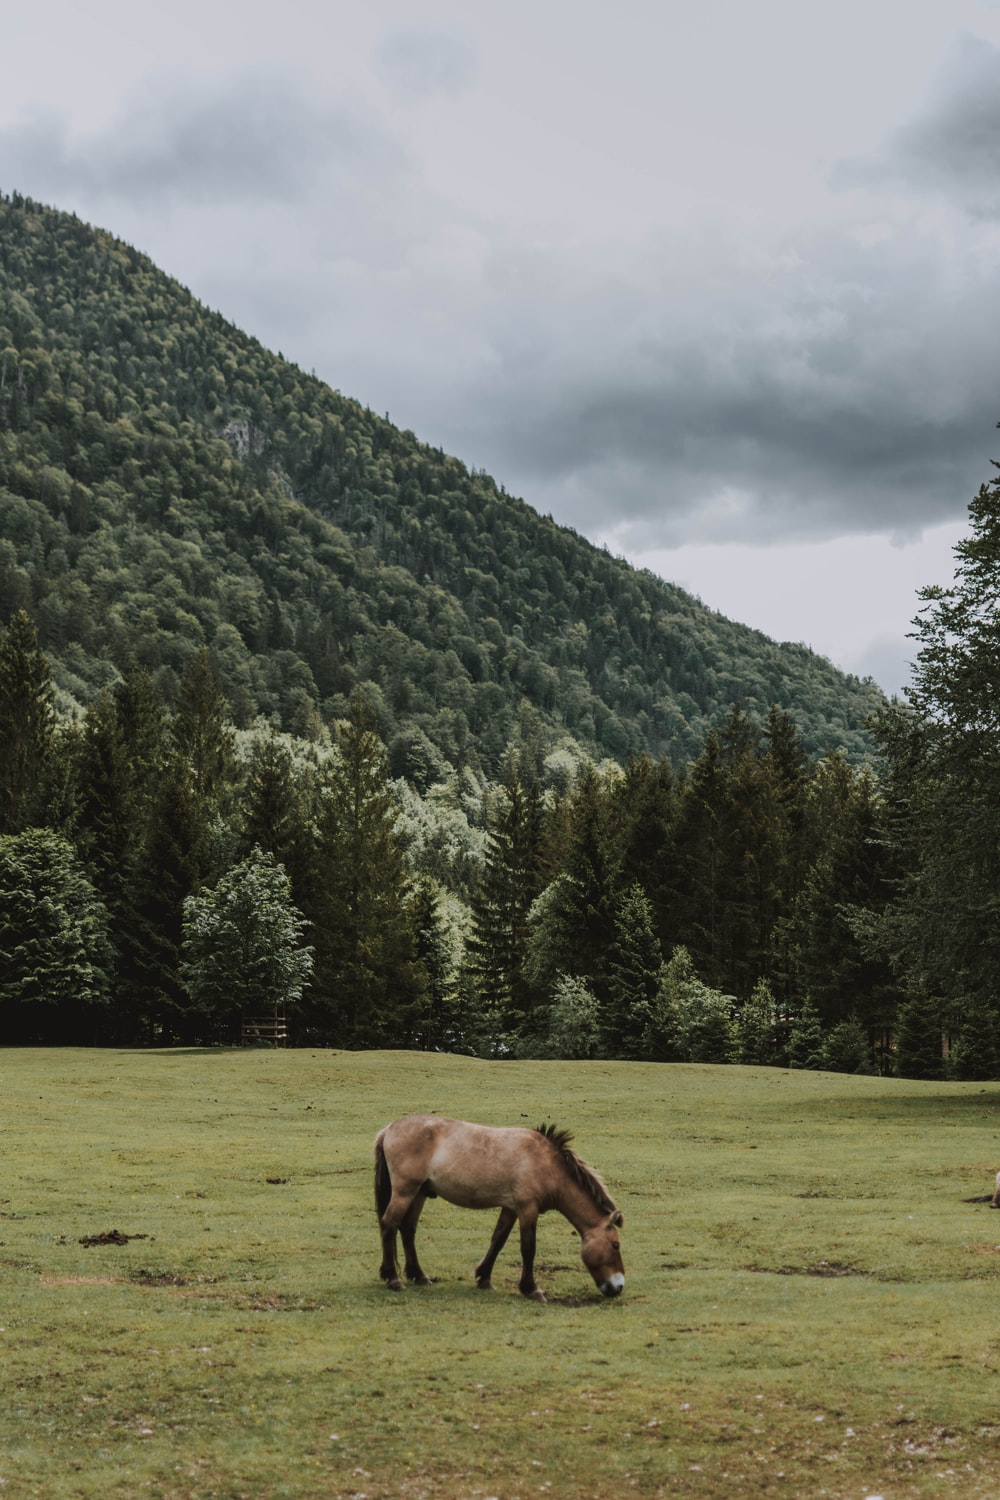 brown horse eating grass near green trees and mountain during daytime